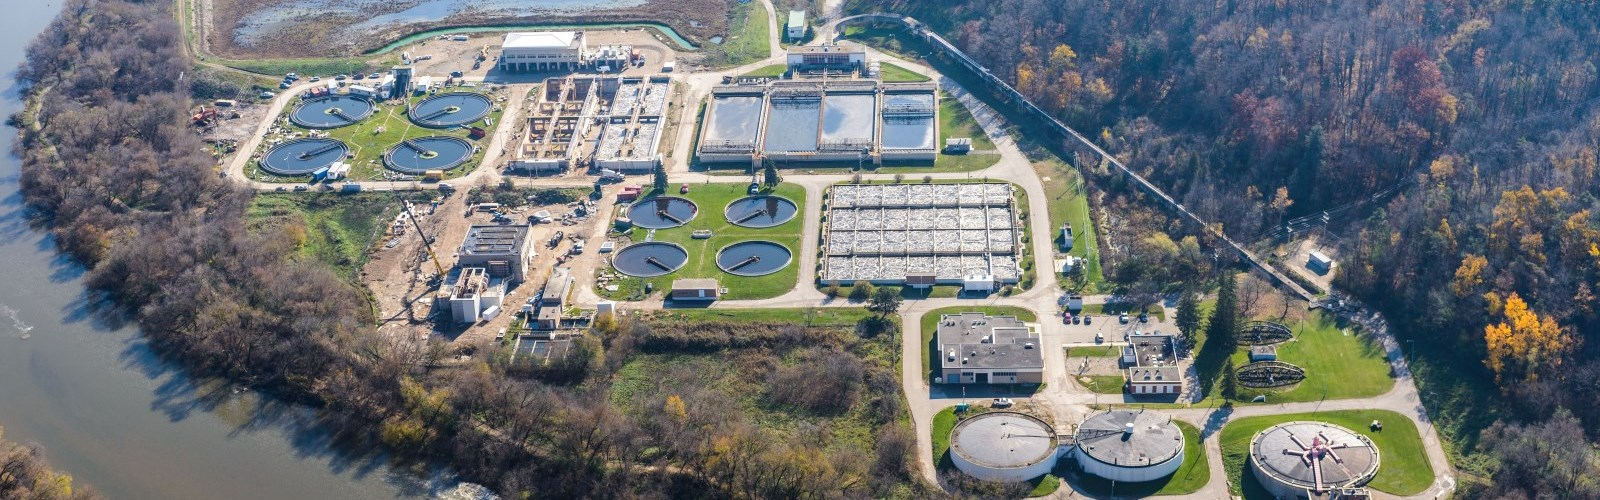 aerial photo of the Kitchener wastewater treatment plant.